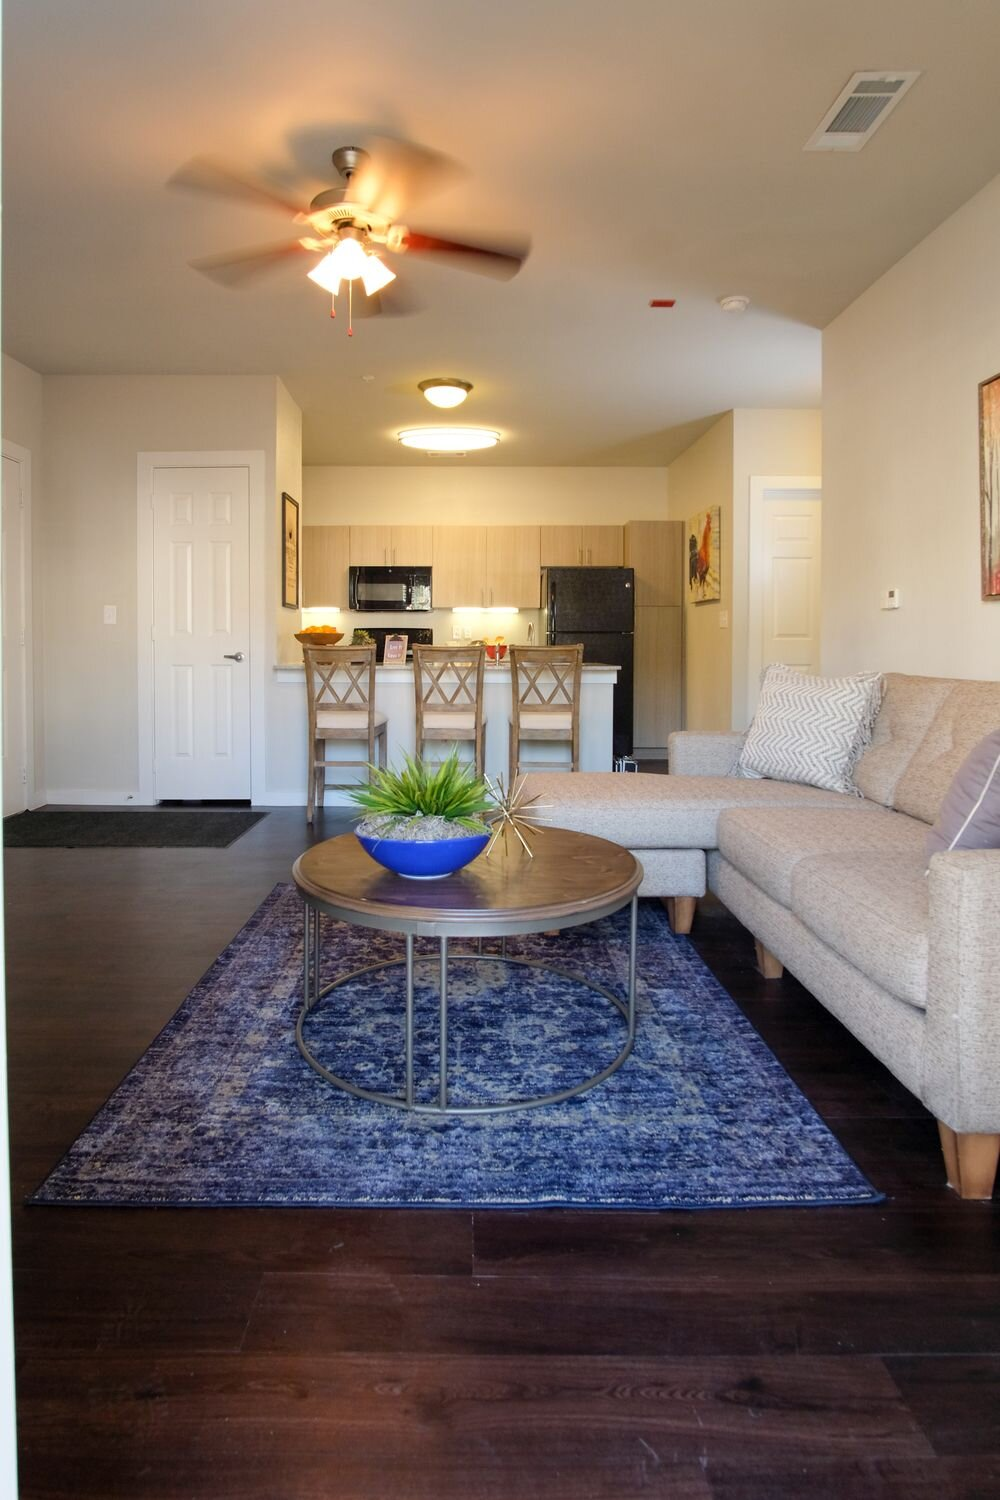 Wood-Style Plank Flooring at Woodcreek Apartments in Woodcreek, Texas